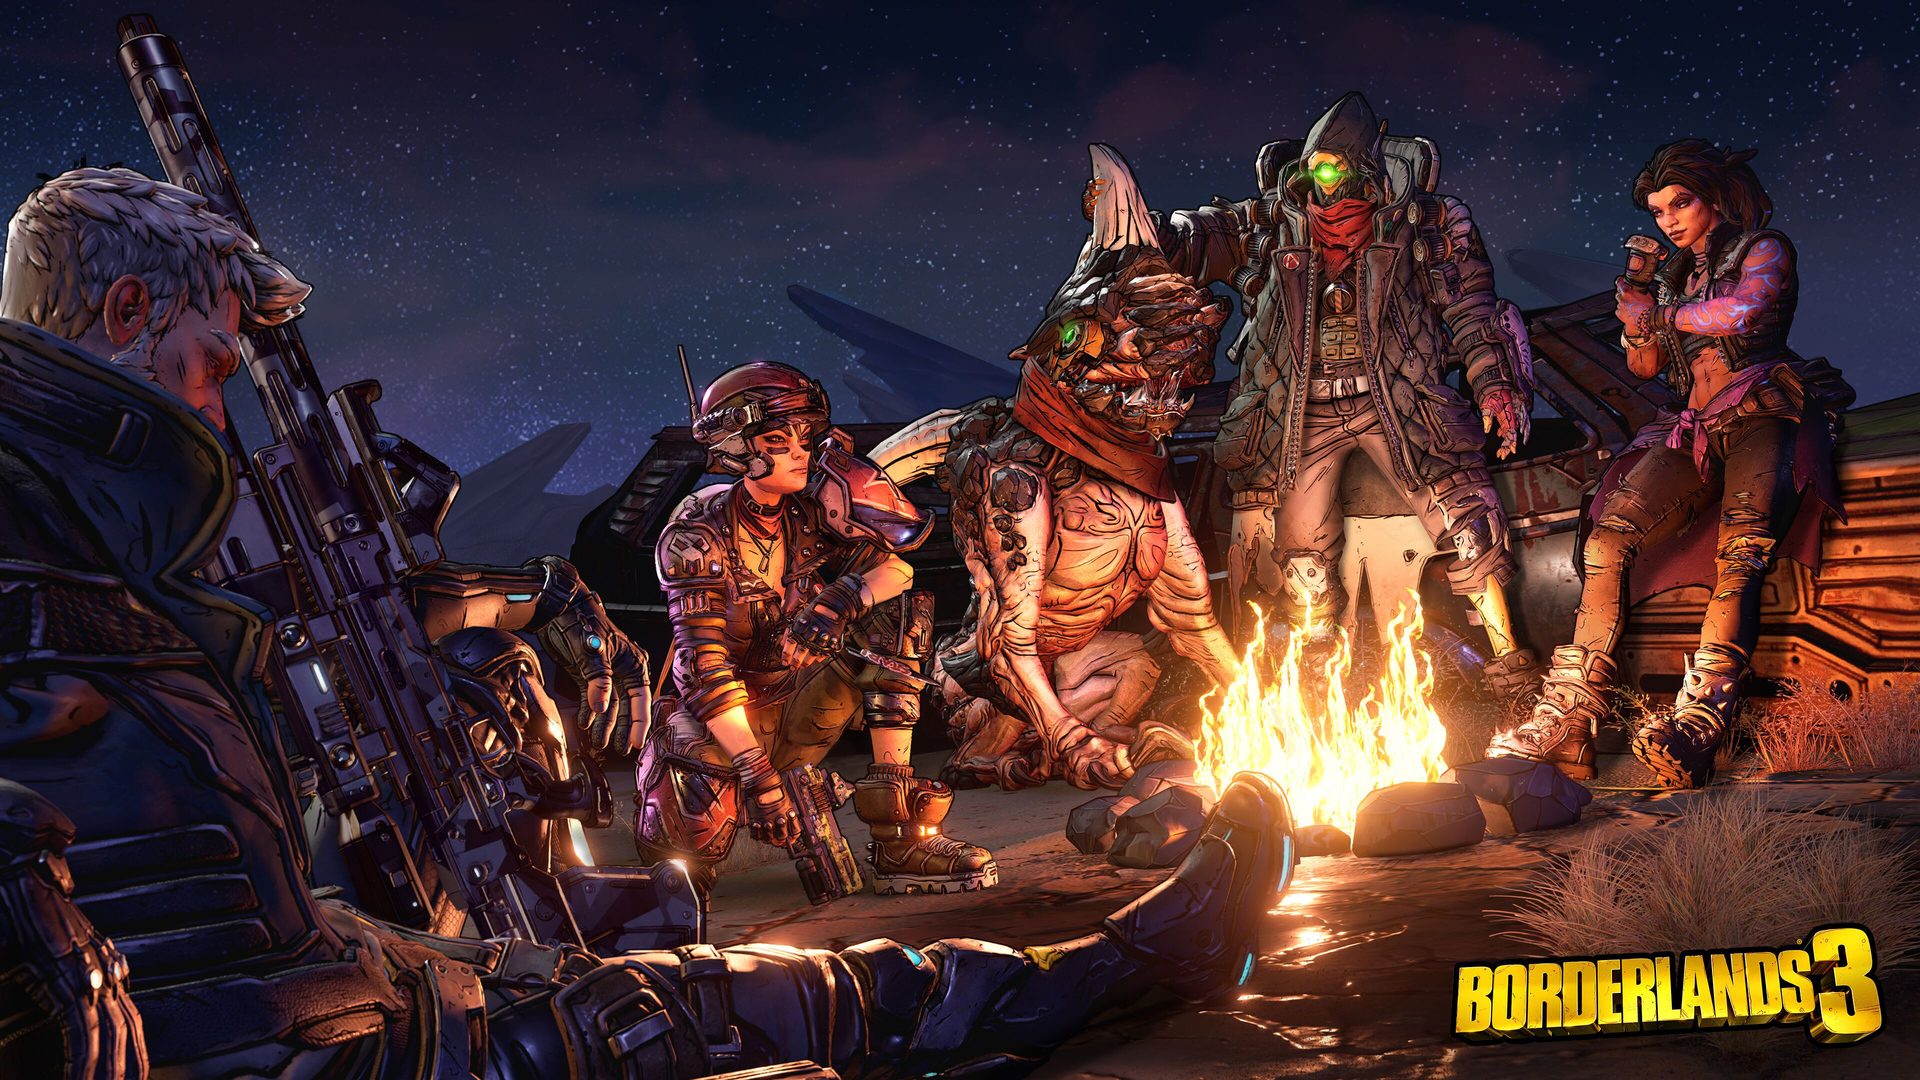 1920x1080 Borderlands 3 2019 4k Laptop Full Hd 1080p Hd 4k